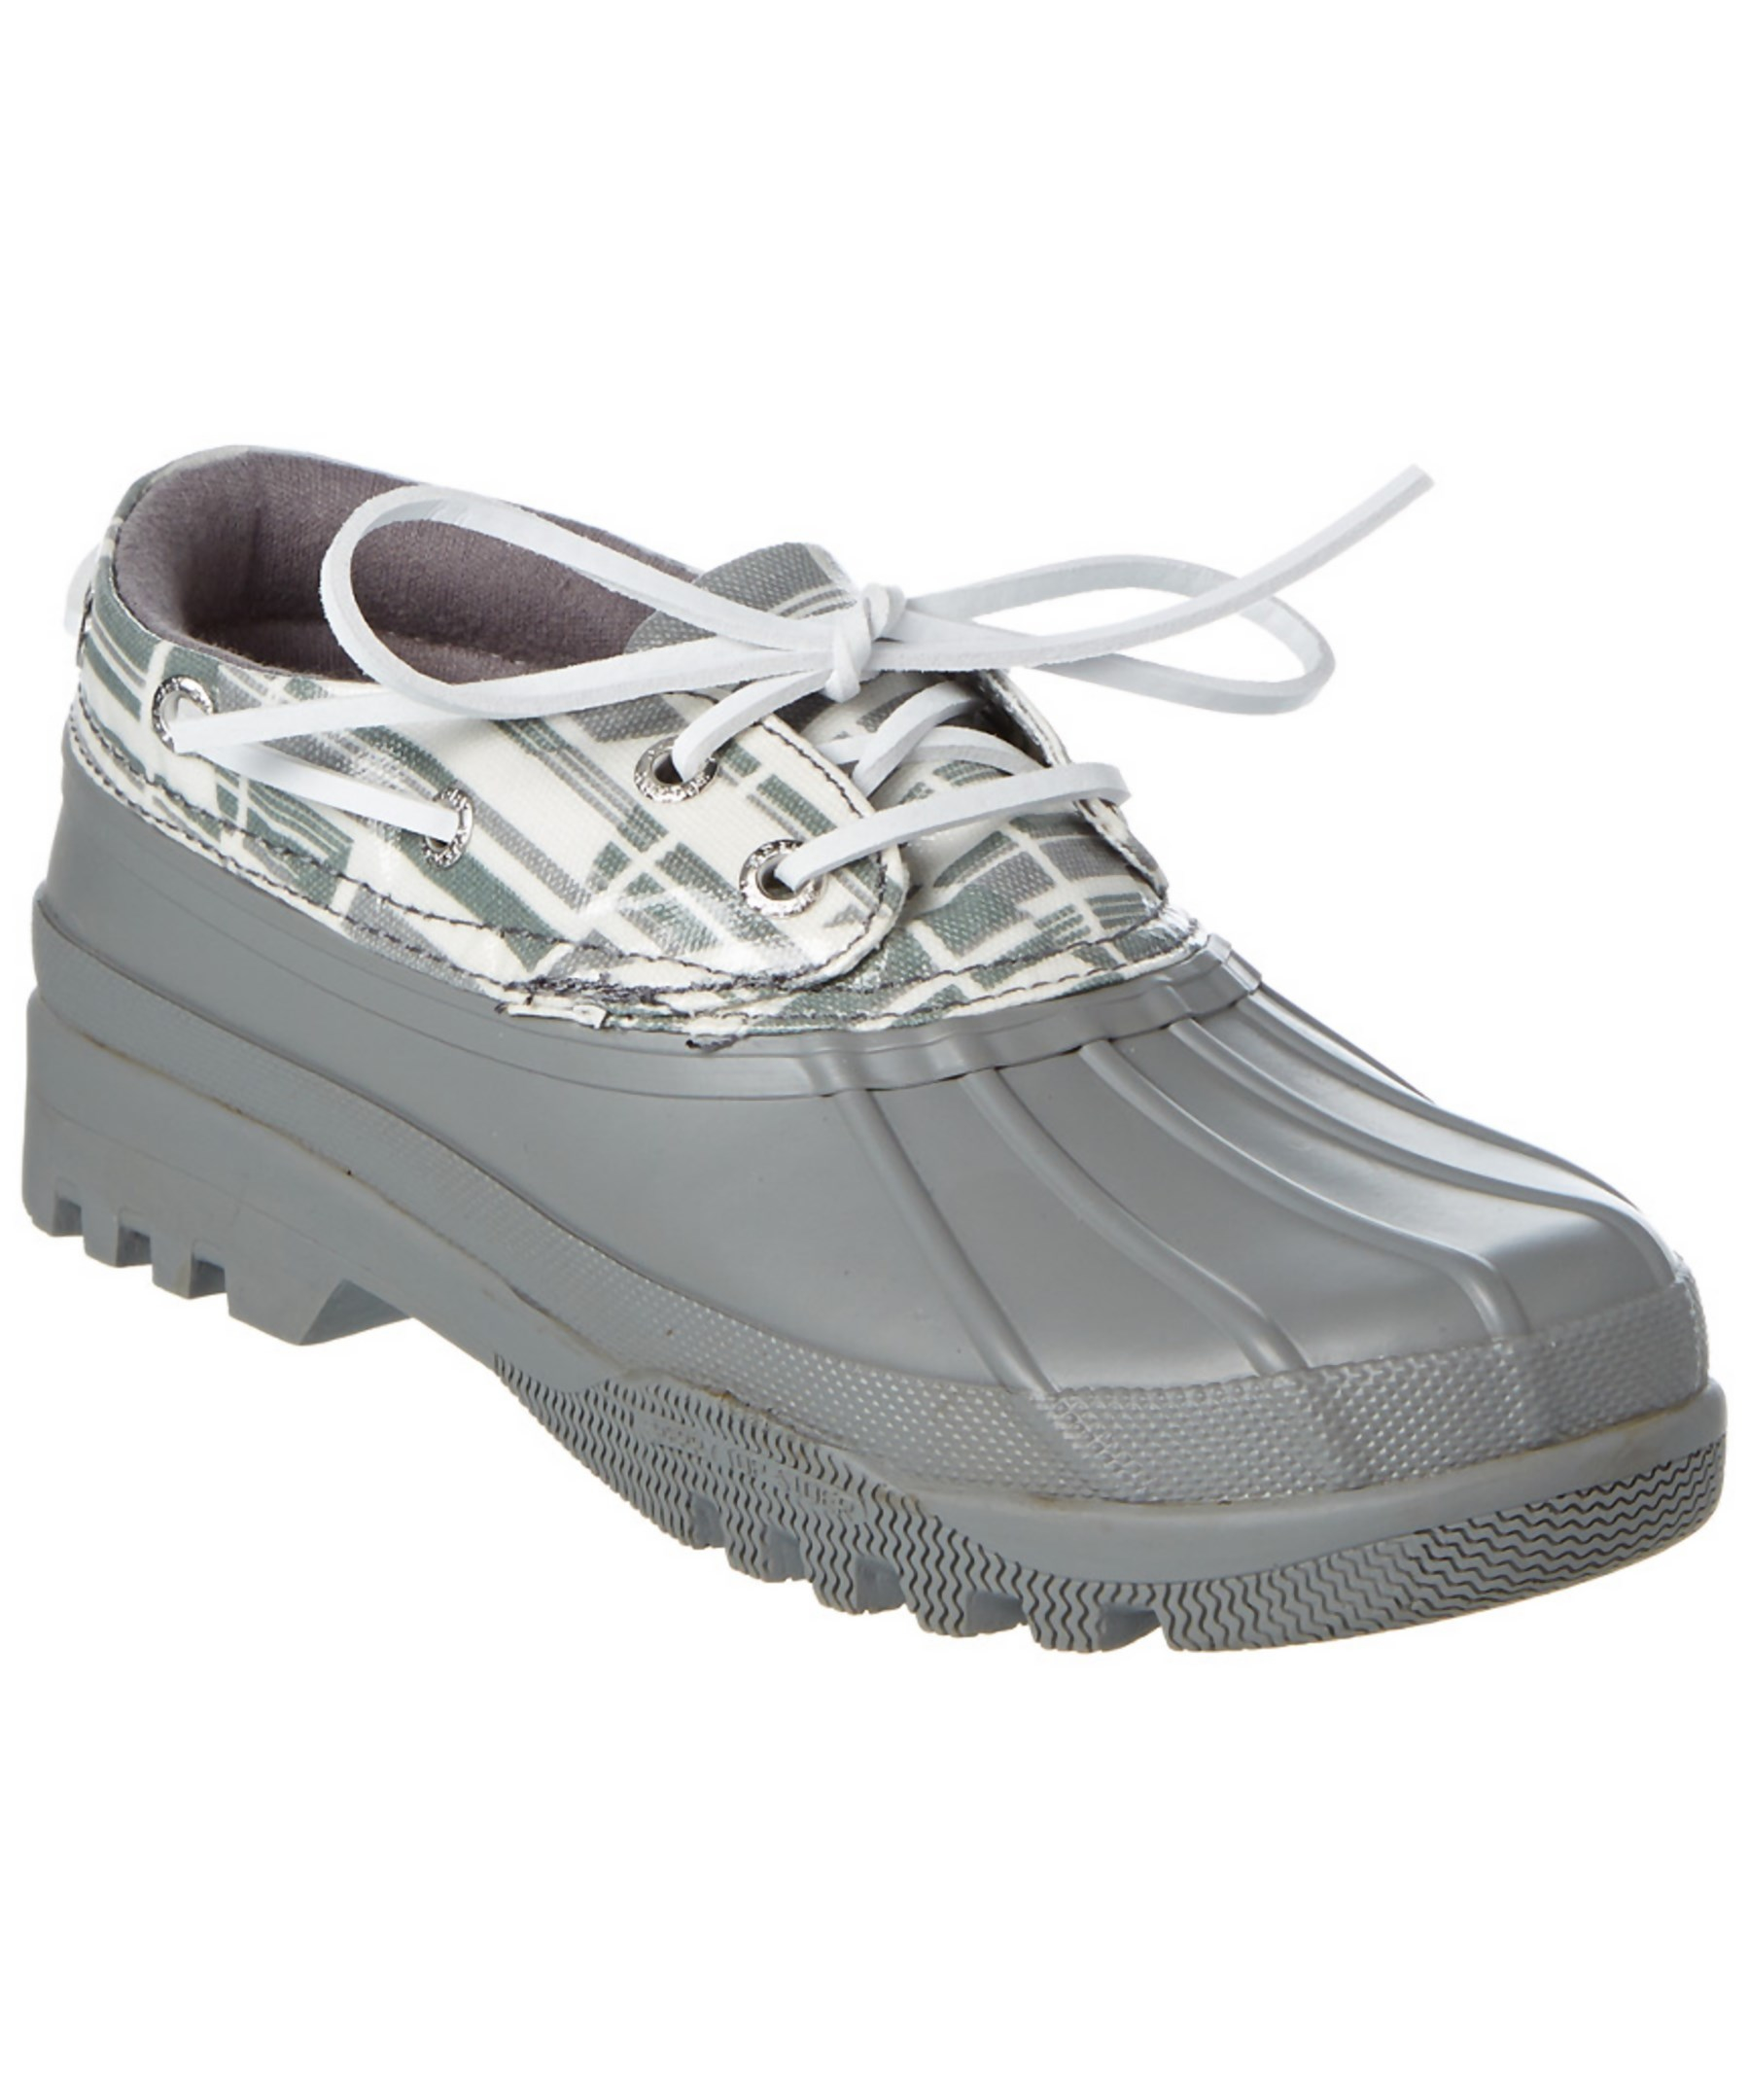 Sperry Top Sider Heron Duck Boot In Gray Grey Save 40